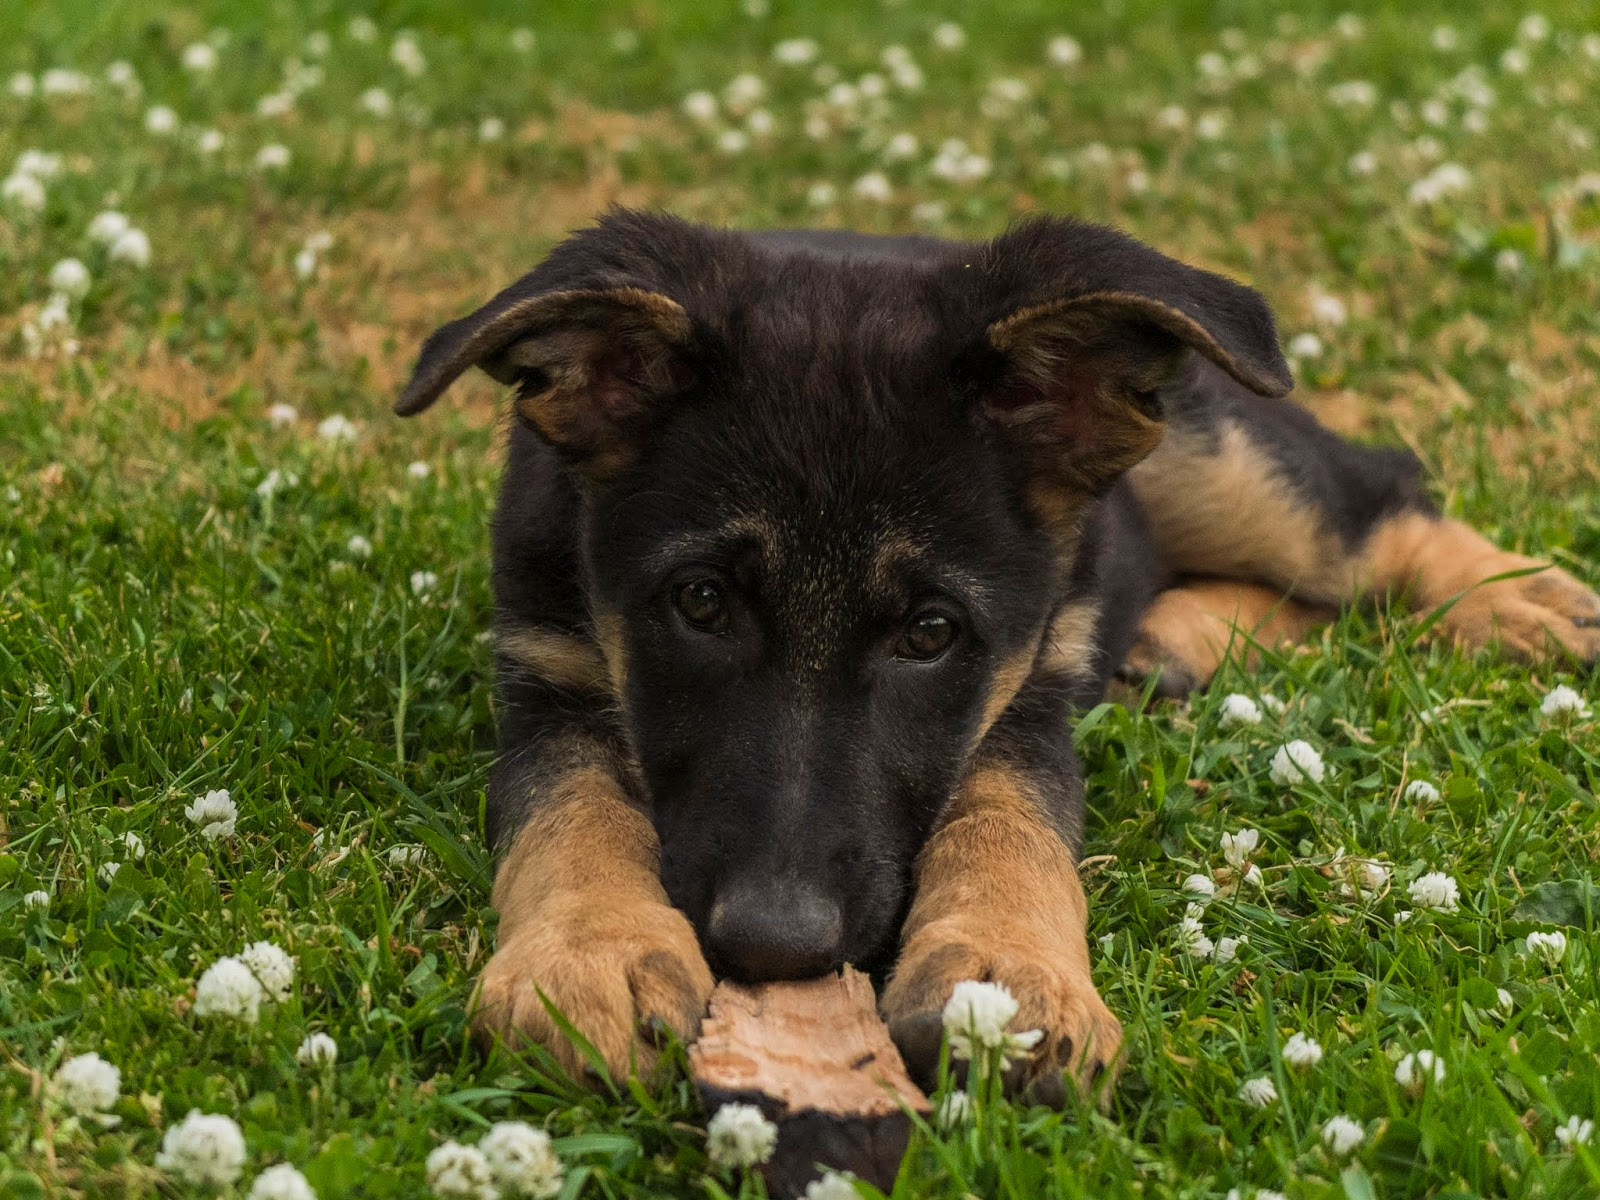 A 3 month old German Shepherd puppy Poppy lying on white clover grass with a stick between her paws.